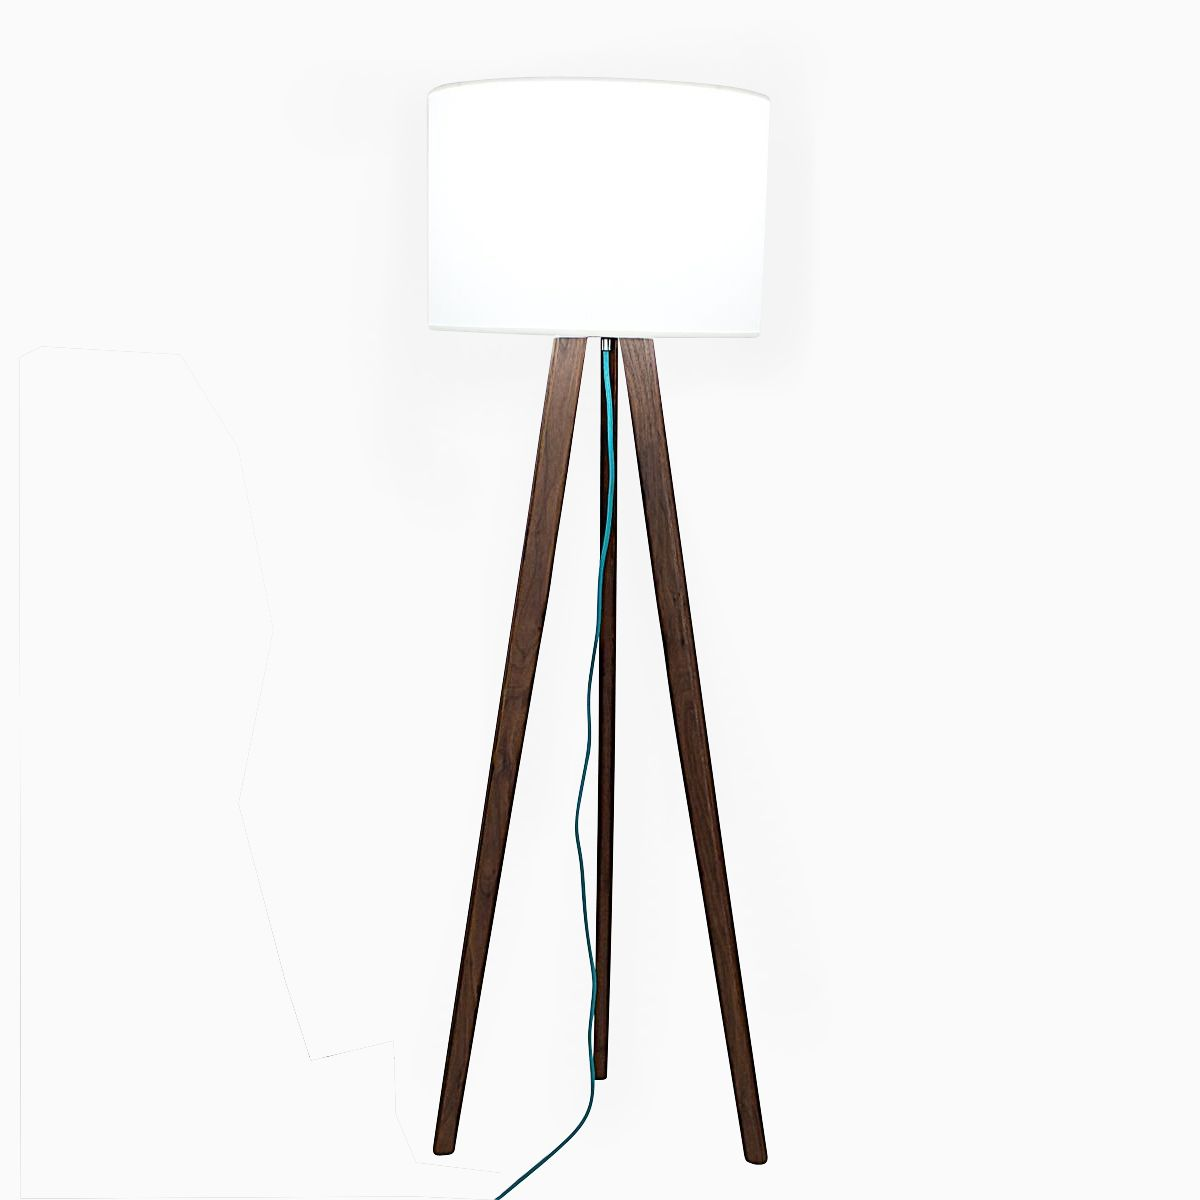 Buy a handmade solid walnut mid century modern tripod floor lamp custom made solid walnut mid century modern tripod floor lamp with teal cord aloadofball Gallery